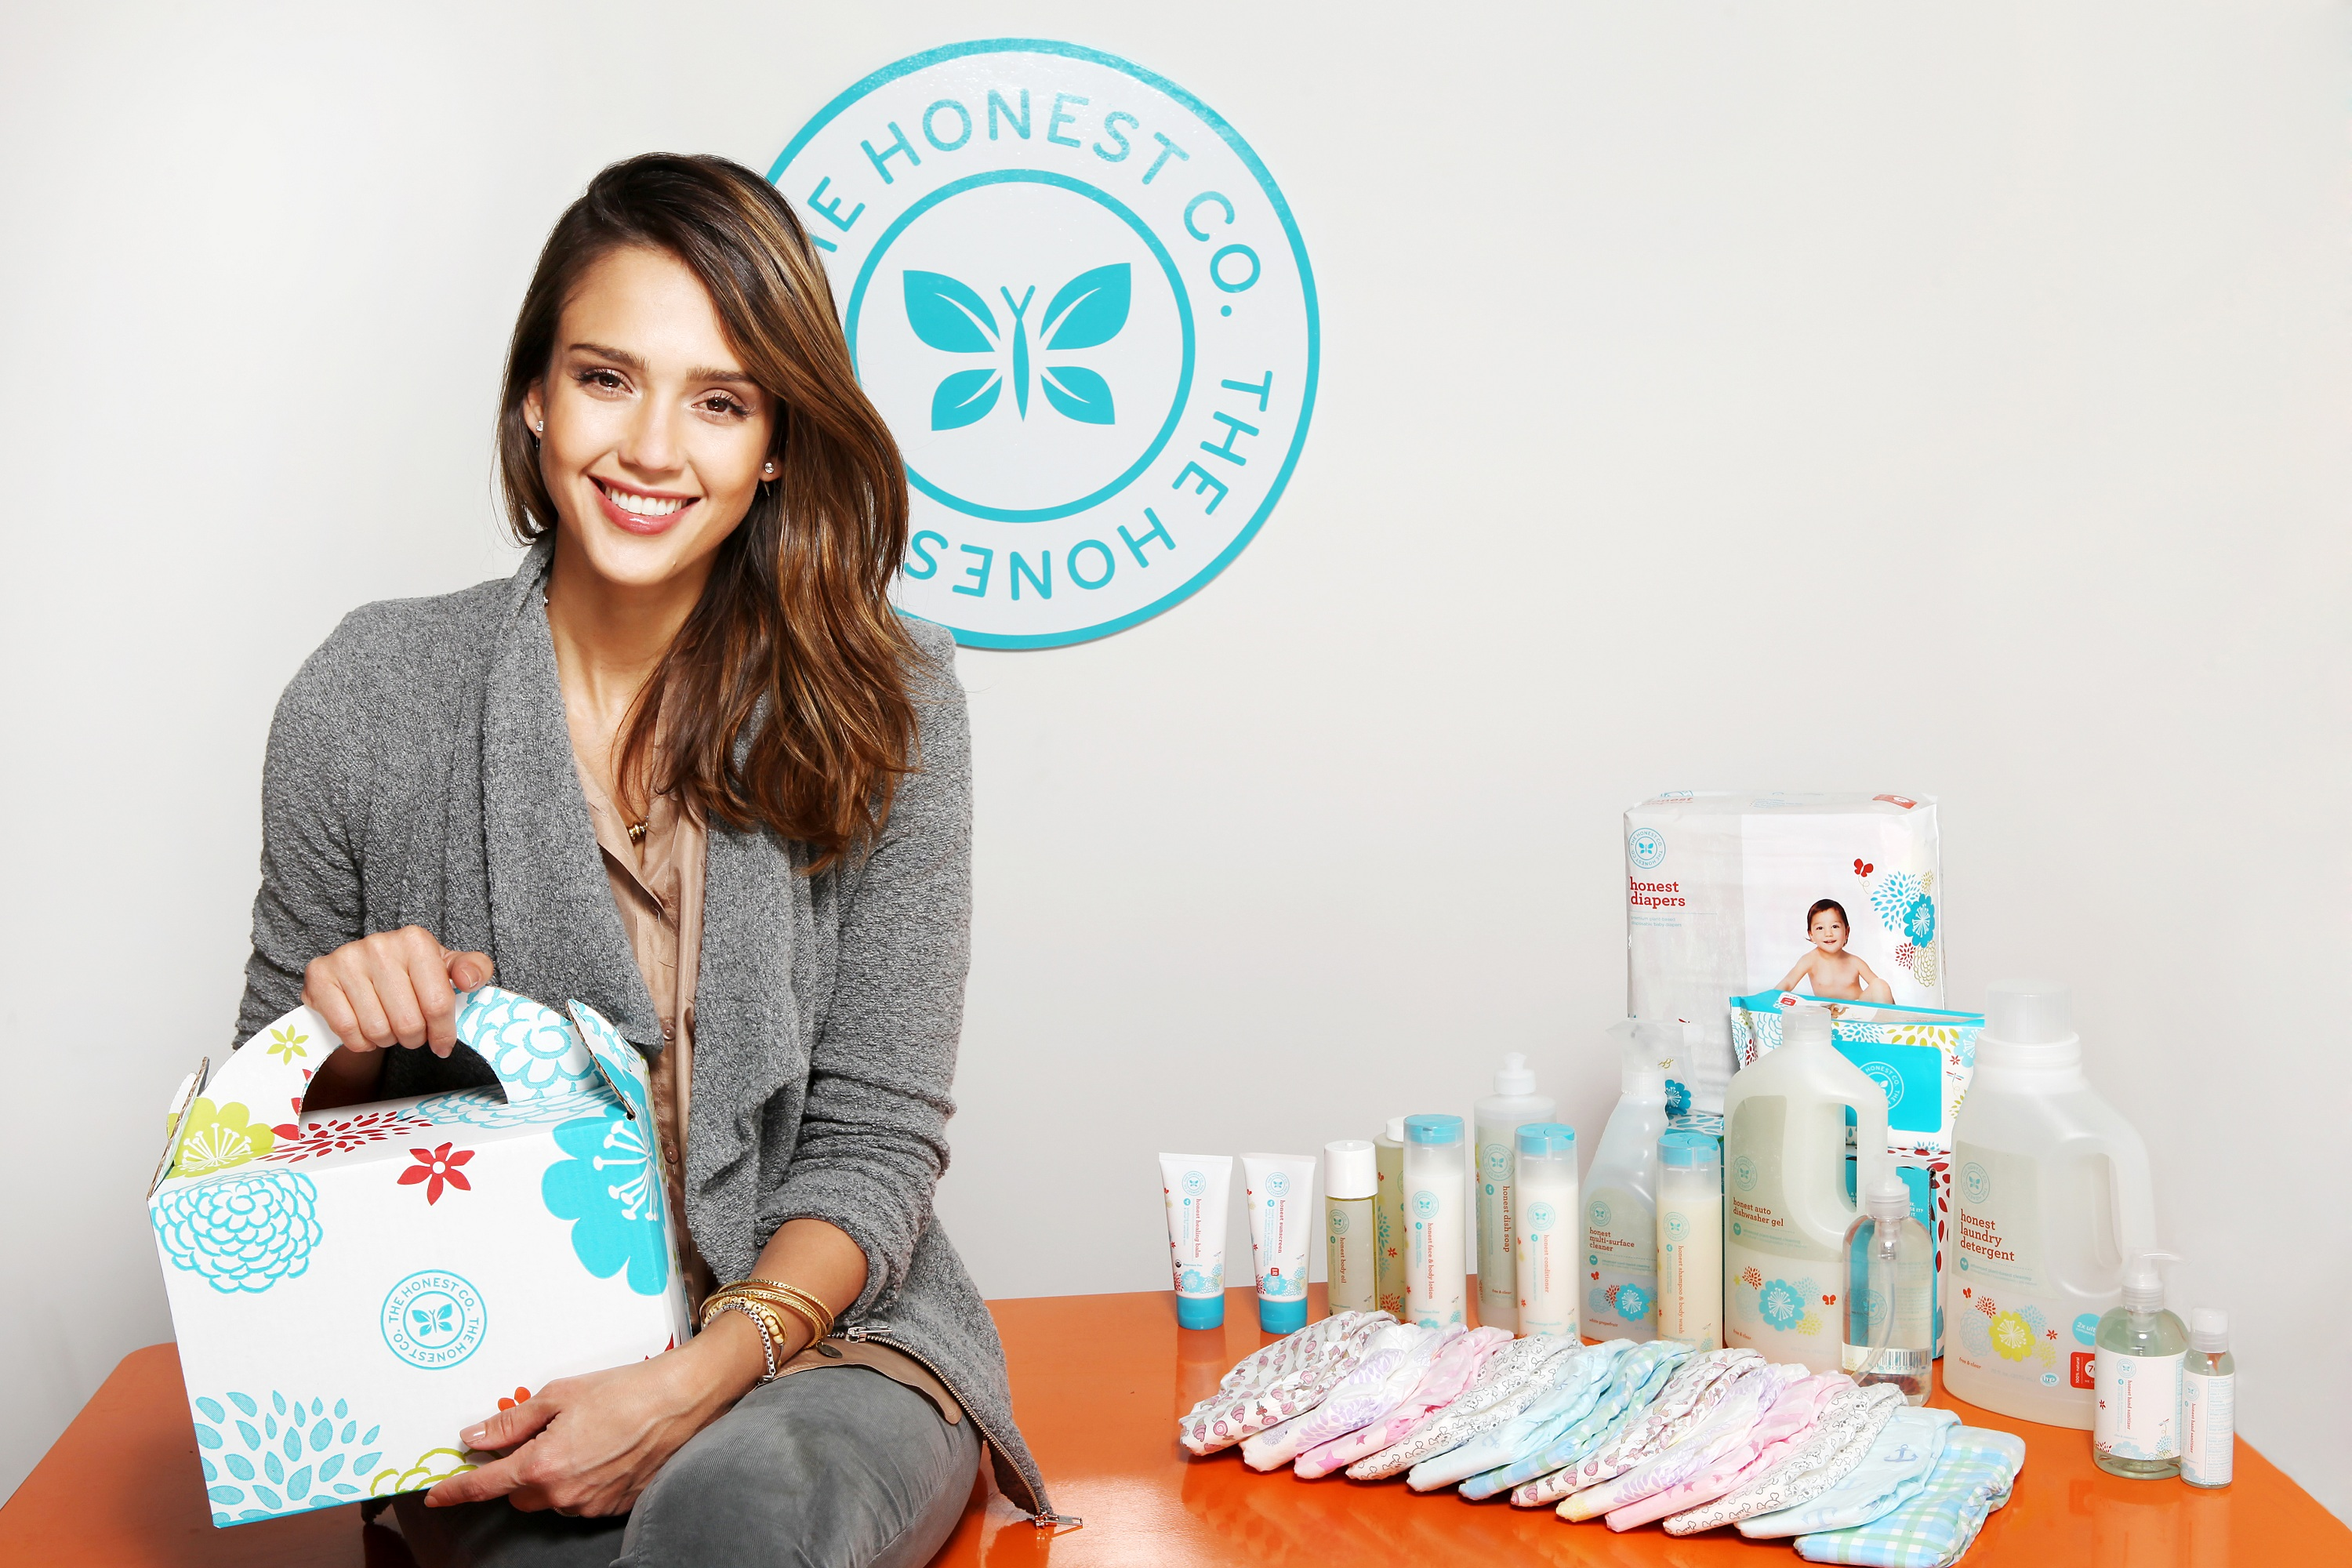 In 2011, Jessica Alba cofounded The Honest Company, a nontoxic household products supplier. The company is valued at $1.7 billion USD. (Photo: Archive)